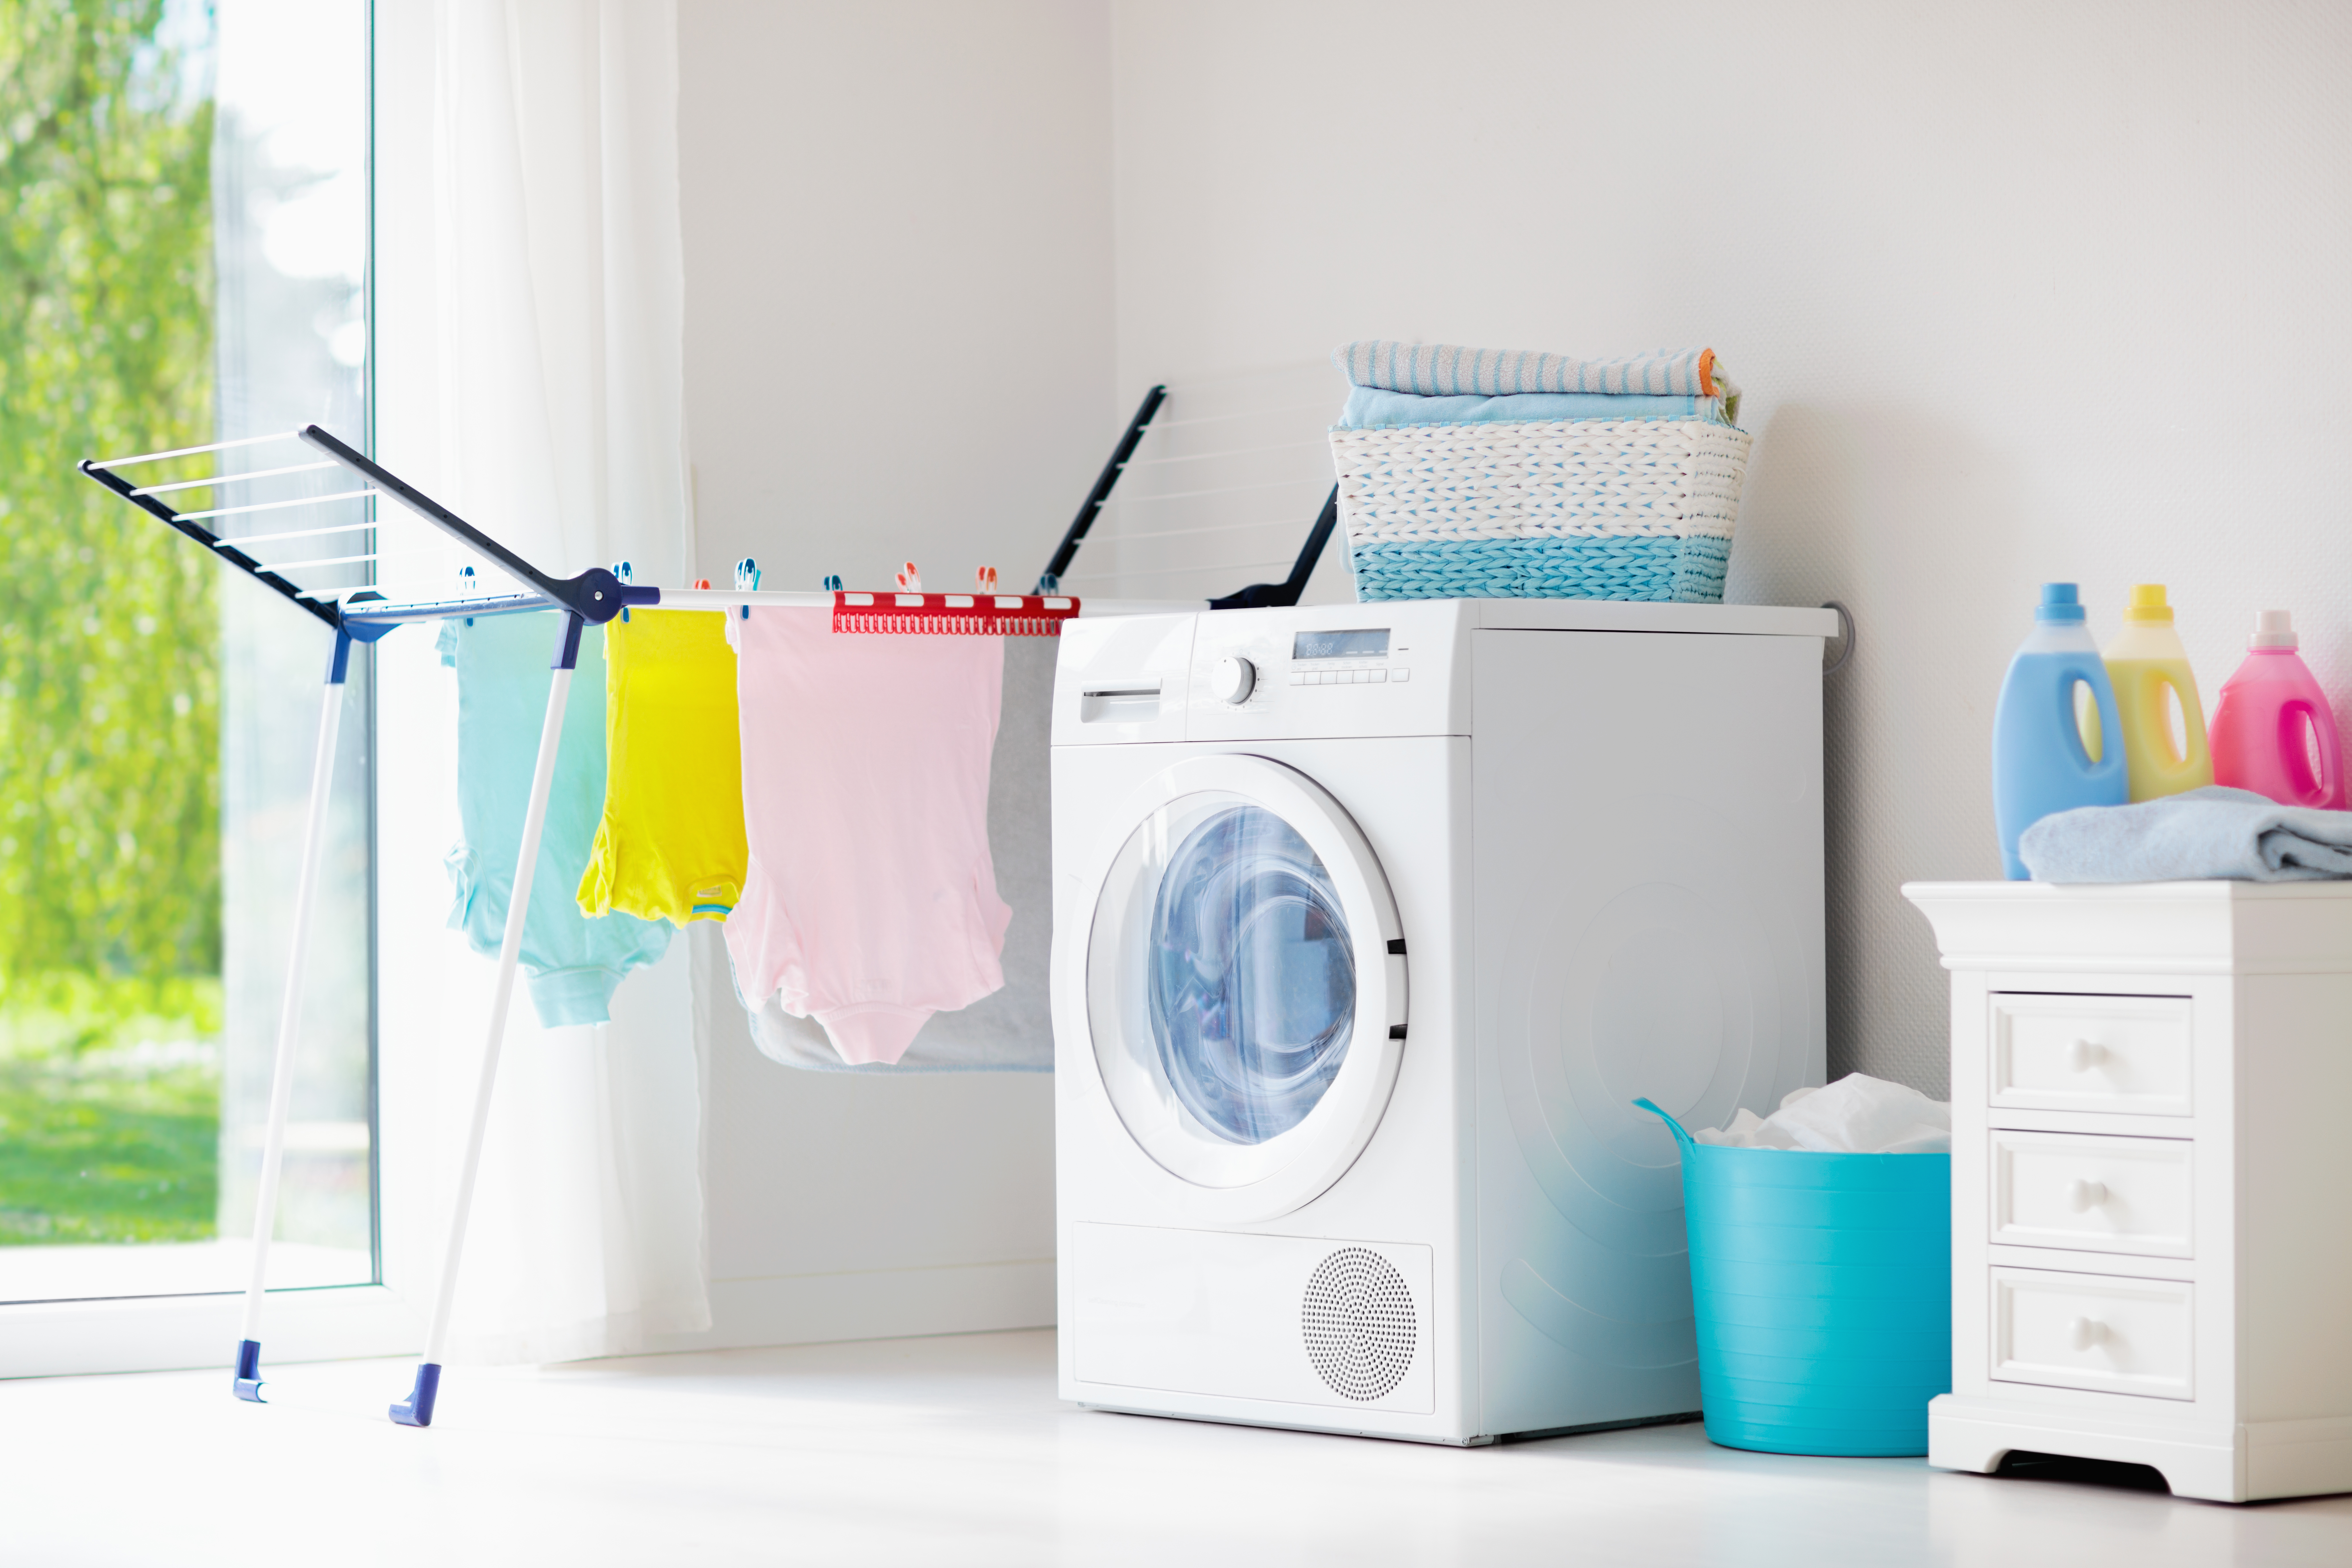 Canva - Laundry room with washing machine